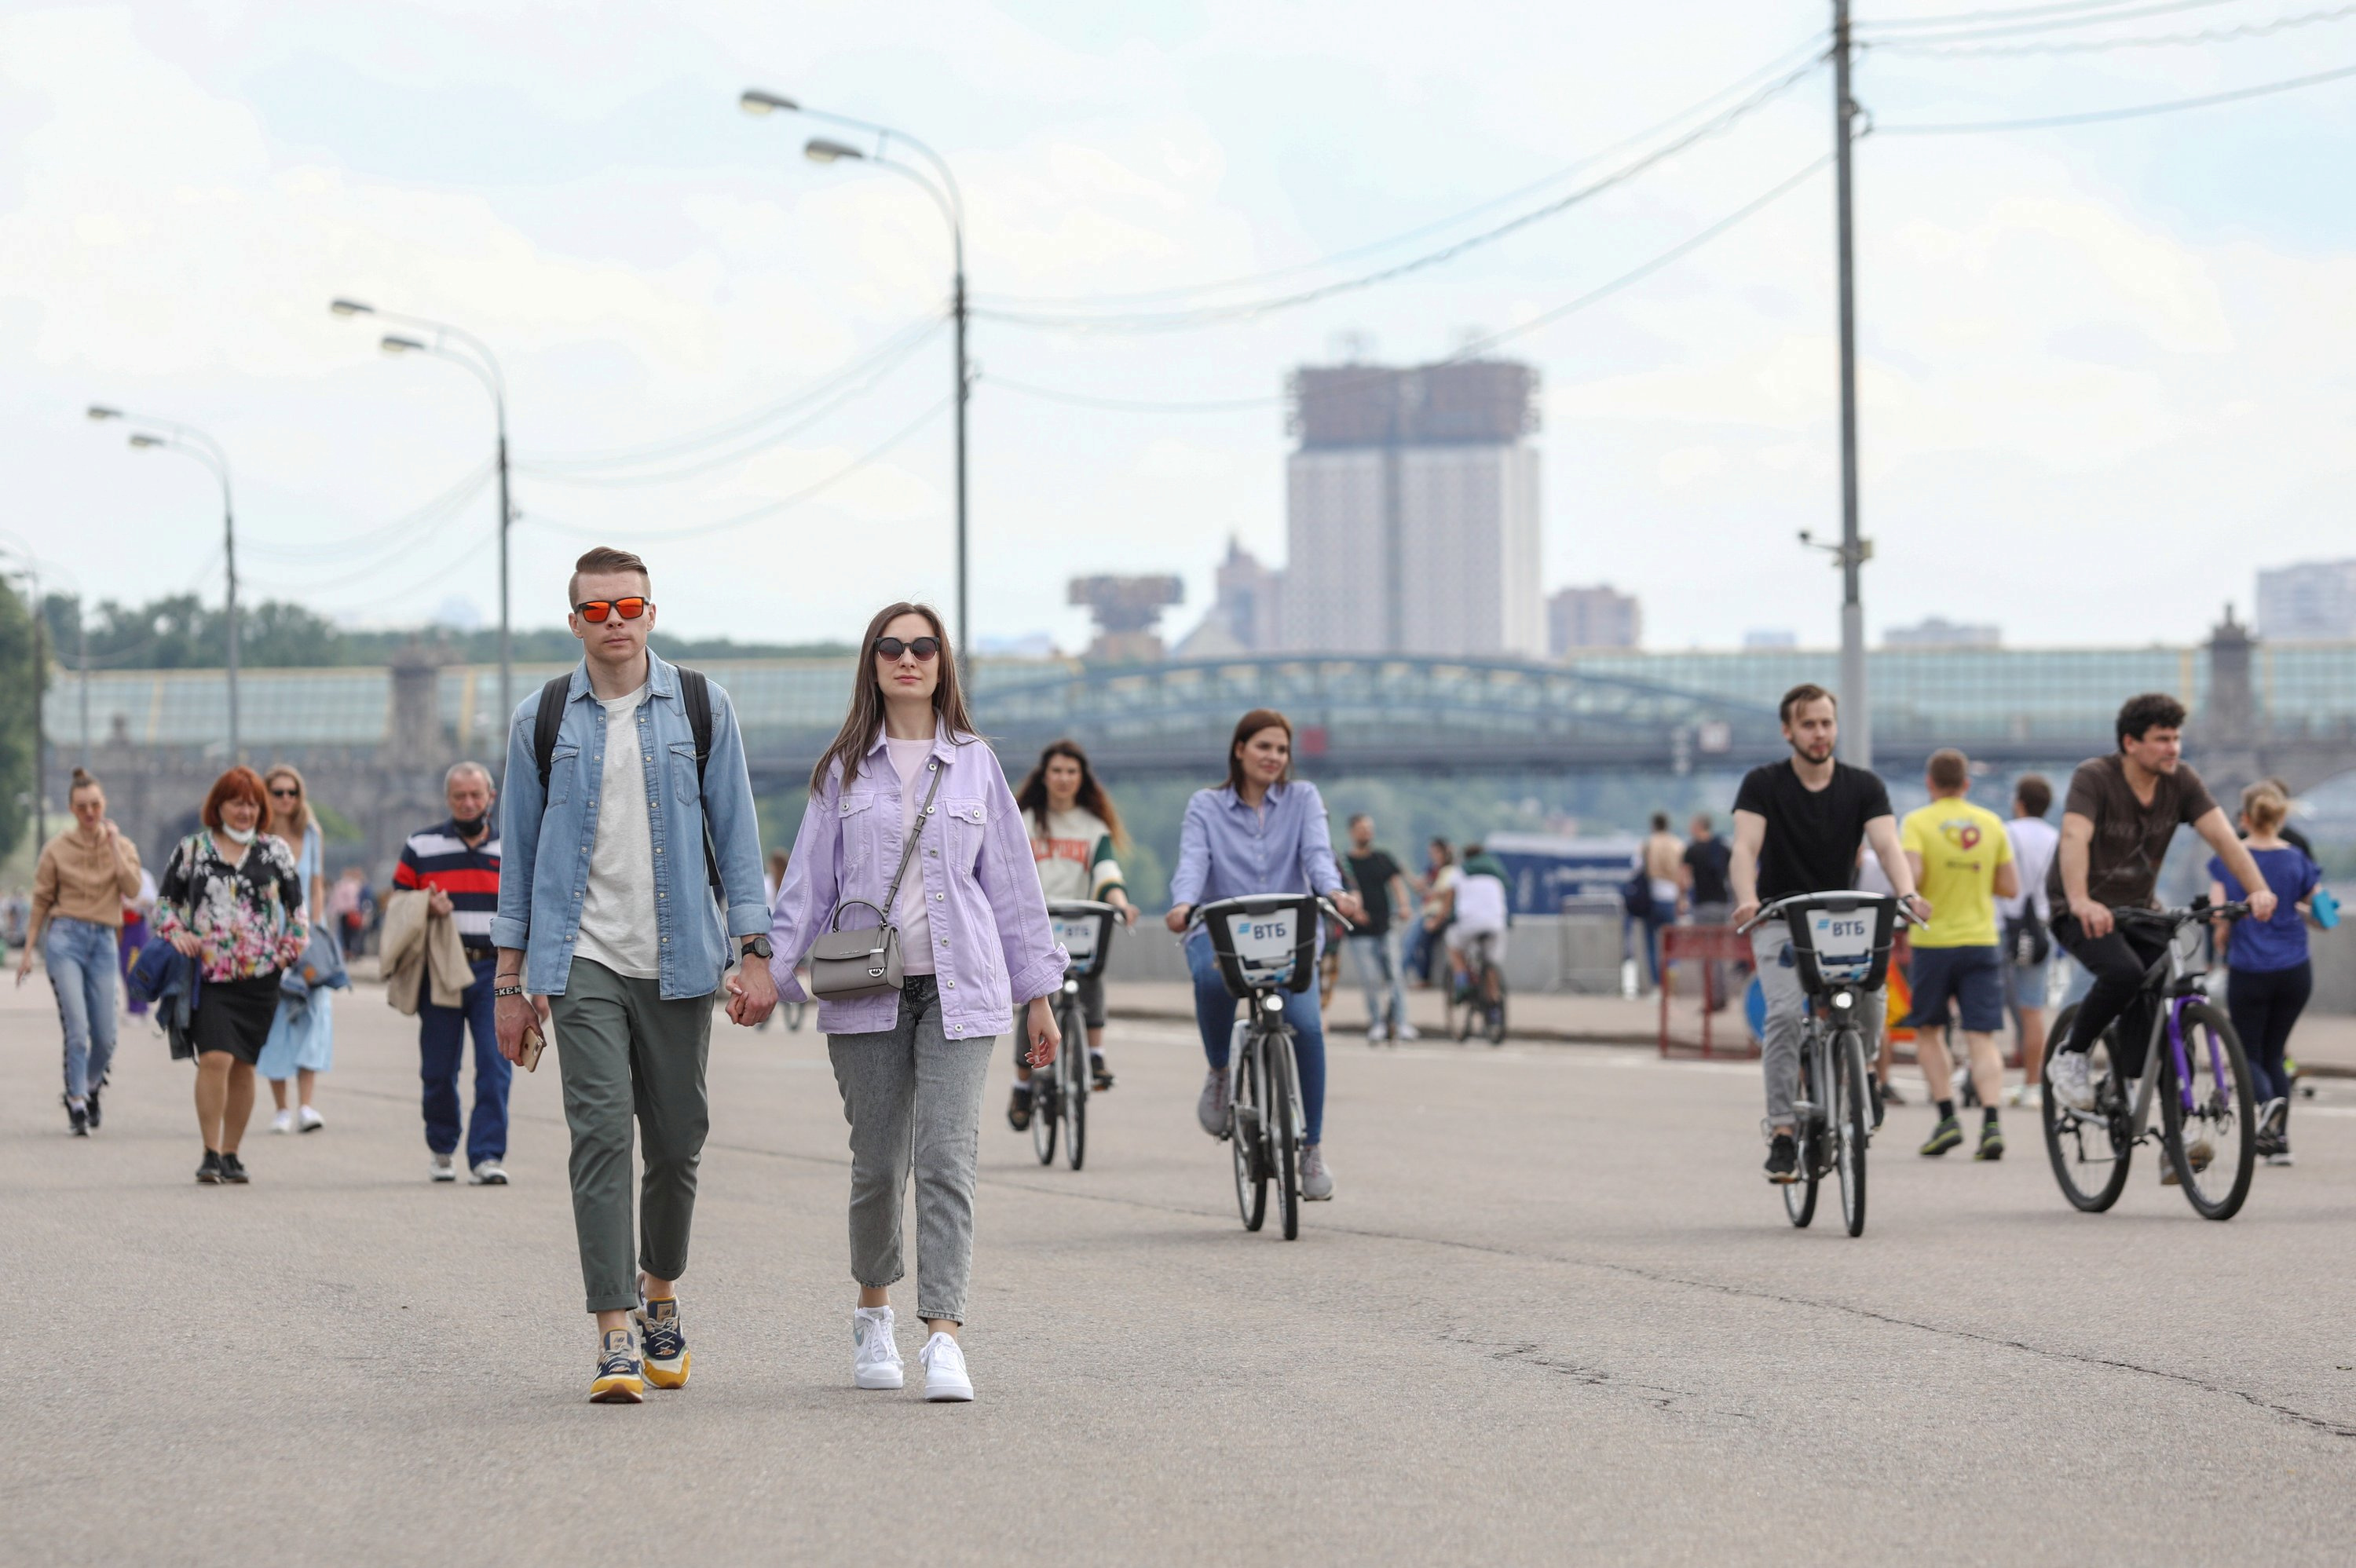 People walk and ride bicycles along an embankment of the Moskva River on a warm summer day, after local authorities partially lifted quarantine restrictions imposed to prevent the spread of the coronavirus disease (COVID-19), in Moscow, Russia June 6, 2020. Kirill Zykov/Moscow News Agency/Handout via REUTERS